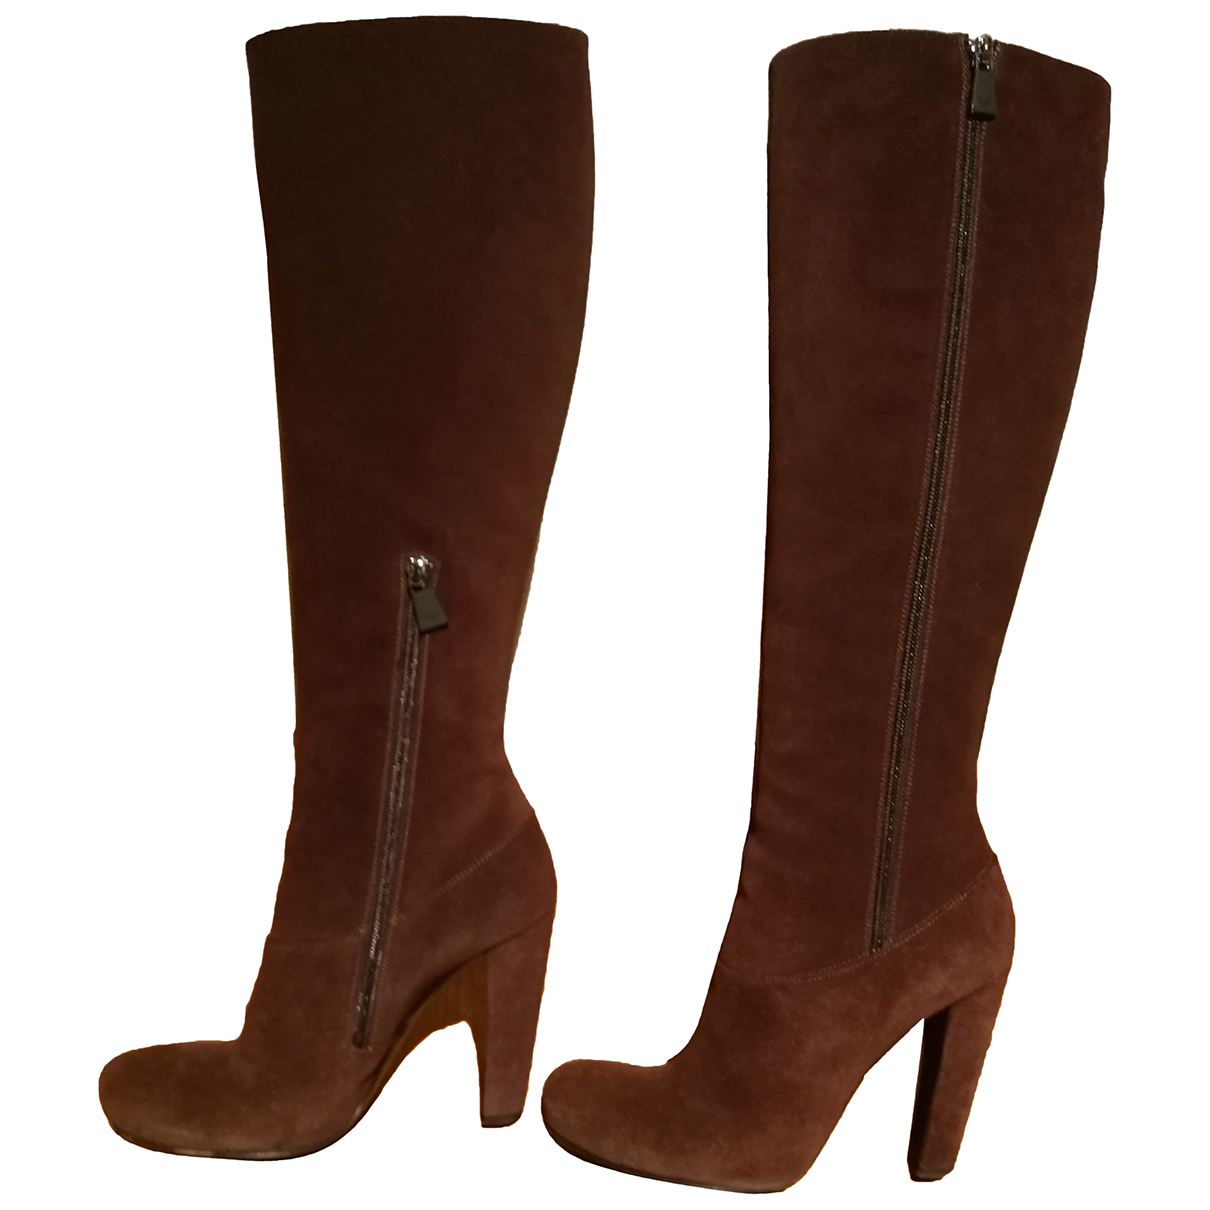 Emporio Armani N Brown Suede Boots for Women 39 IT